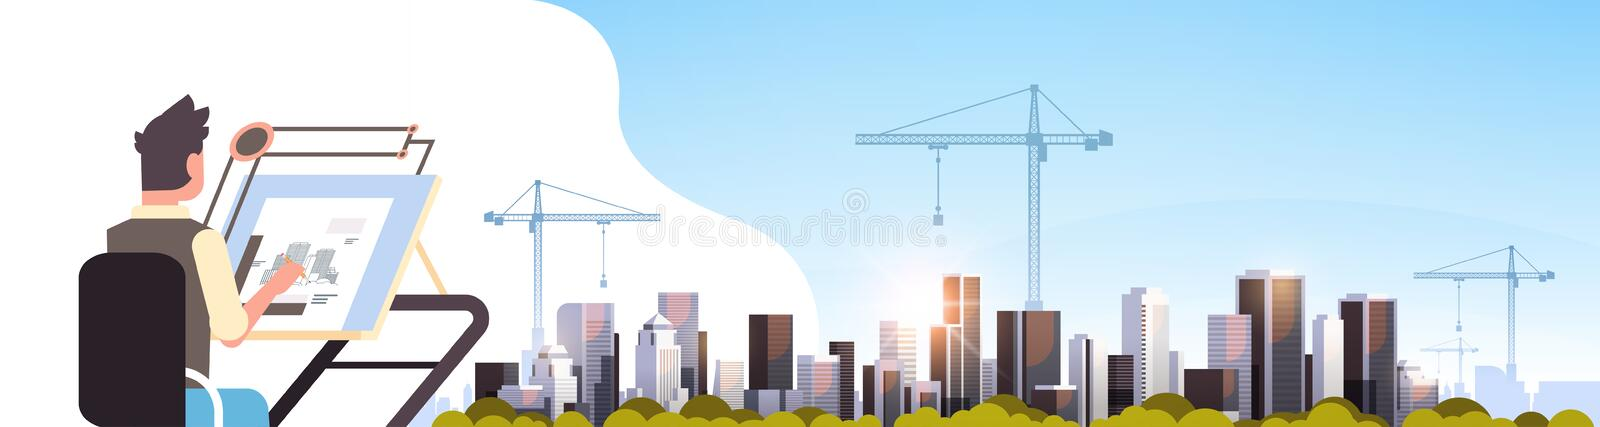 Architect drawing blueprint urban building plan on adjustable board over city construction site tower cranes residential royalty free illustration